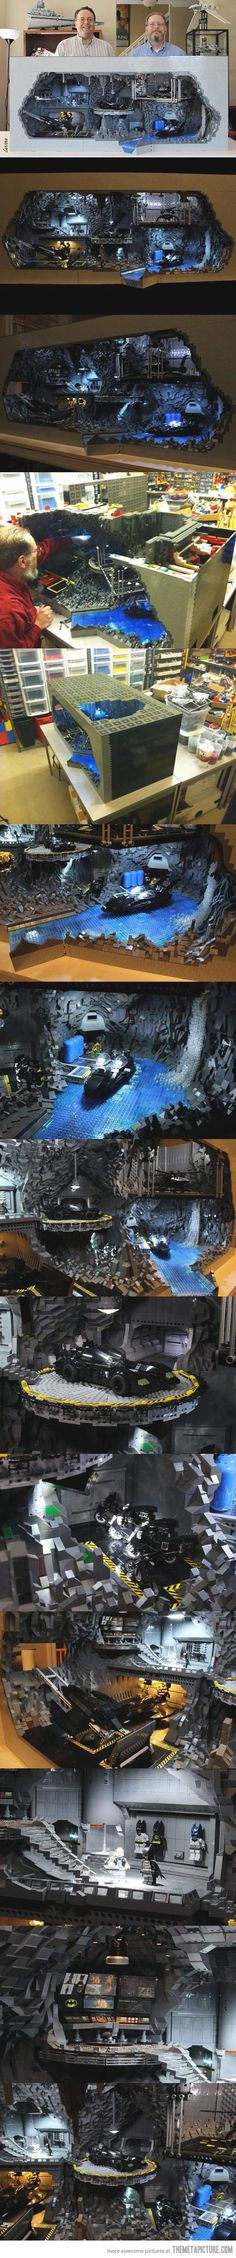 Awesome #LEGO #Batcave is awesome! #batman